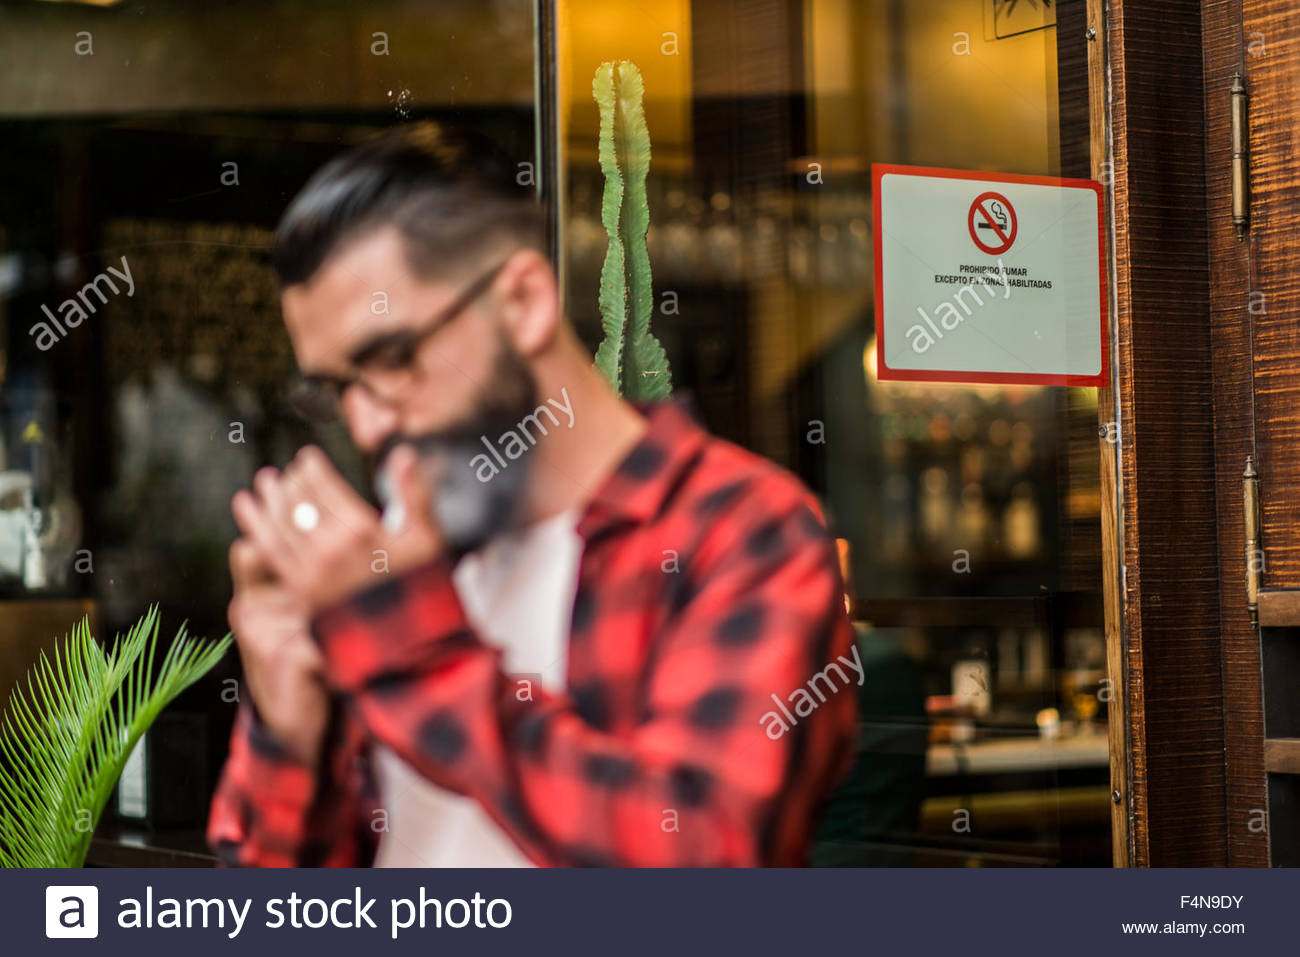 Hipster lighting a cigarette in front of a bar with smoking ban - Stock Image